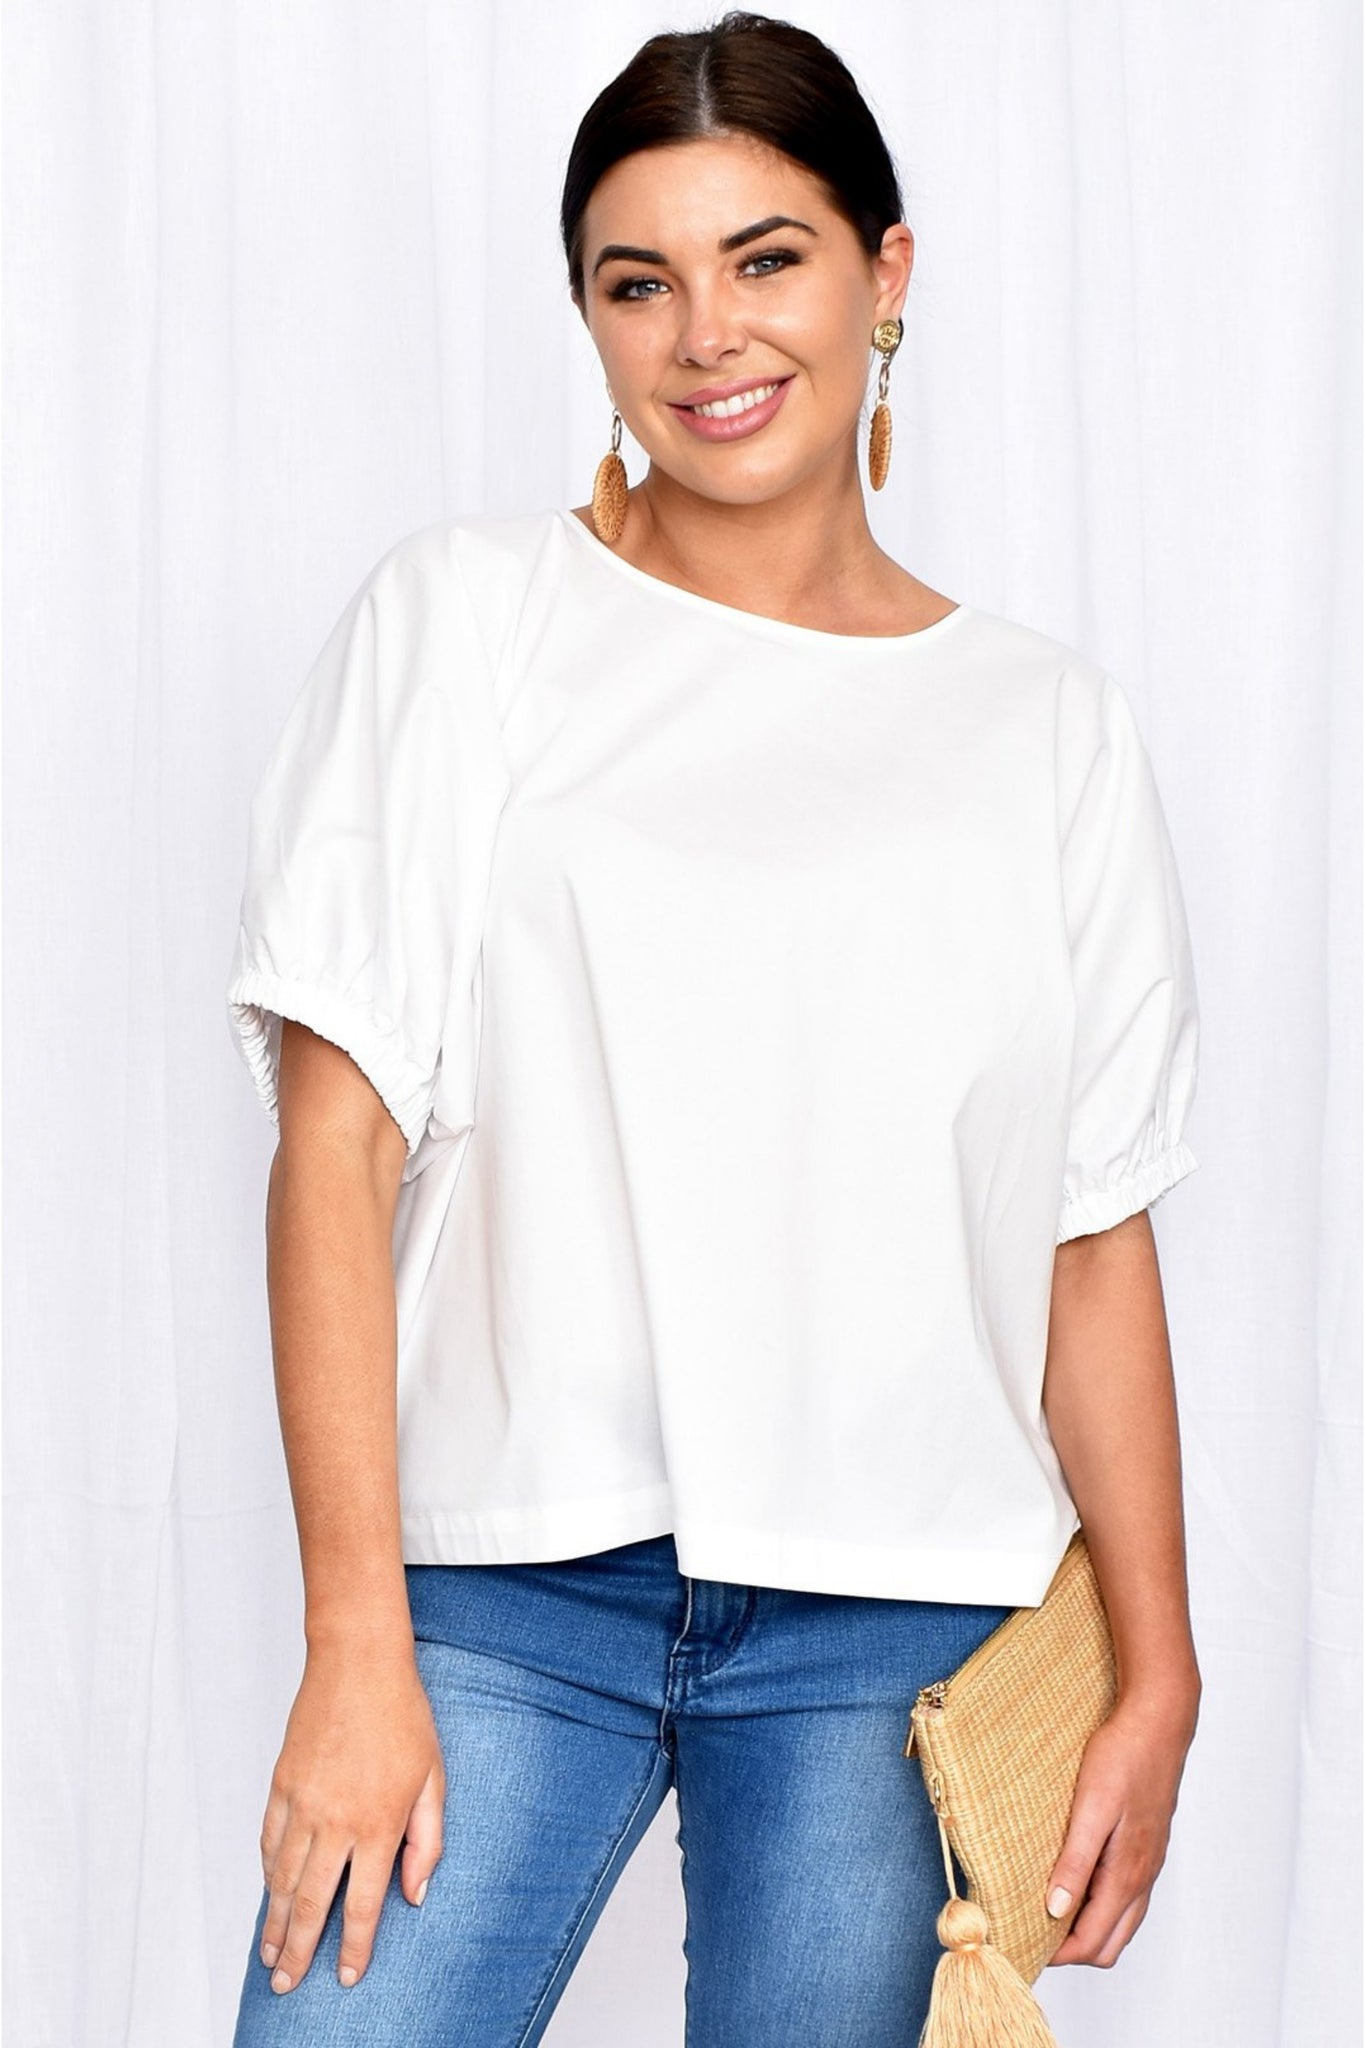 Buy Adorne Pippa Unstructured Top in White online now at Smoke and MIrrors Boutique. Adorne Stockists Brisbane. White Cotton Poplin Oversized blouse with elasticated sleeves.